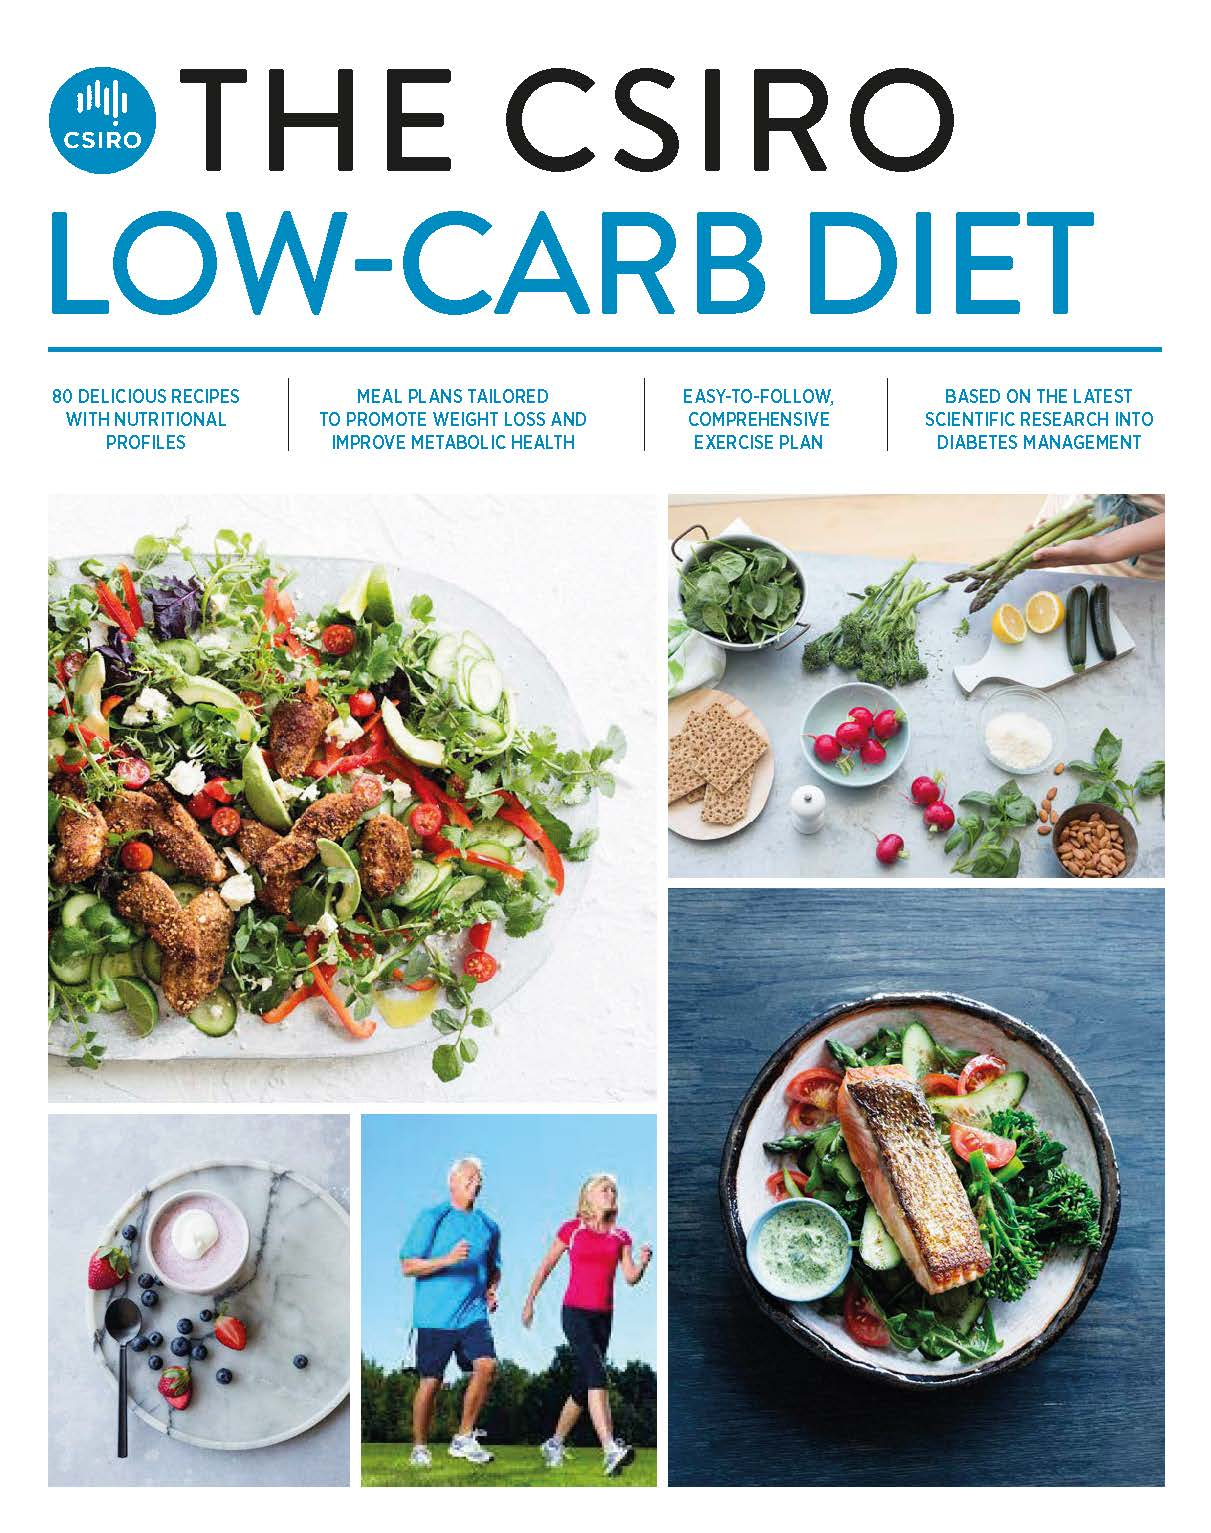 The CSIRO Low-Carb Diet by Grant Brinkworth,Pennie Taylor, ISBN: 9781925481488